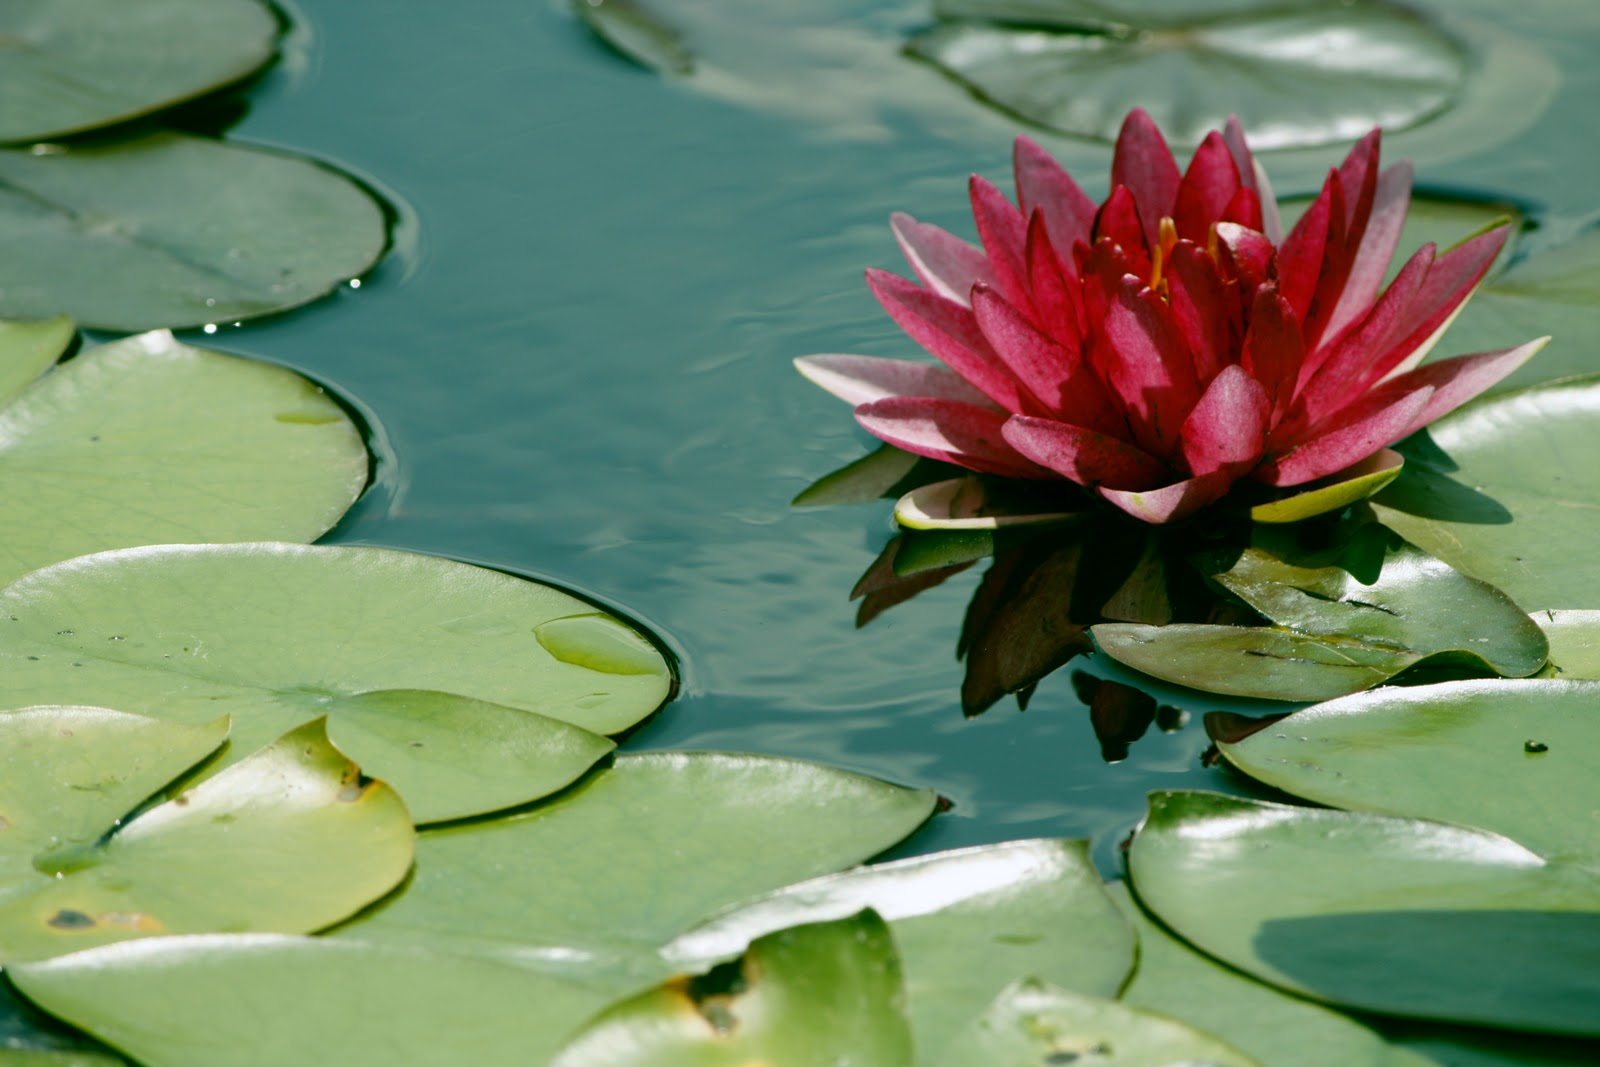 Lily pad pink flower jrs world at large a pink flower on top of a lily pad izmirmasajfo